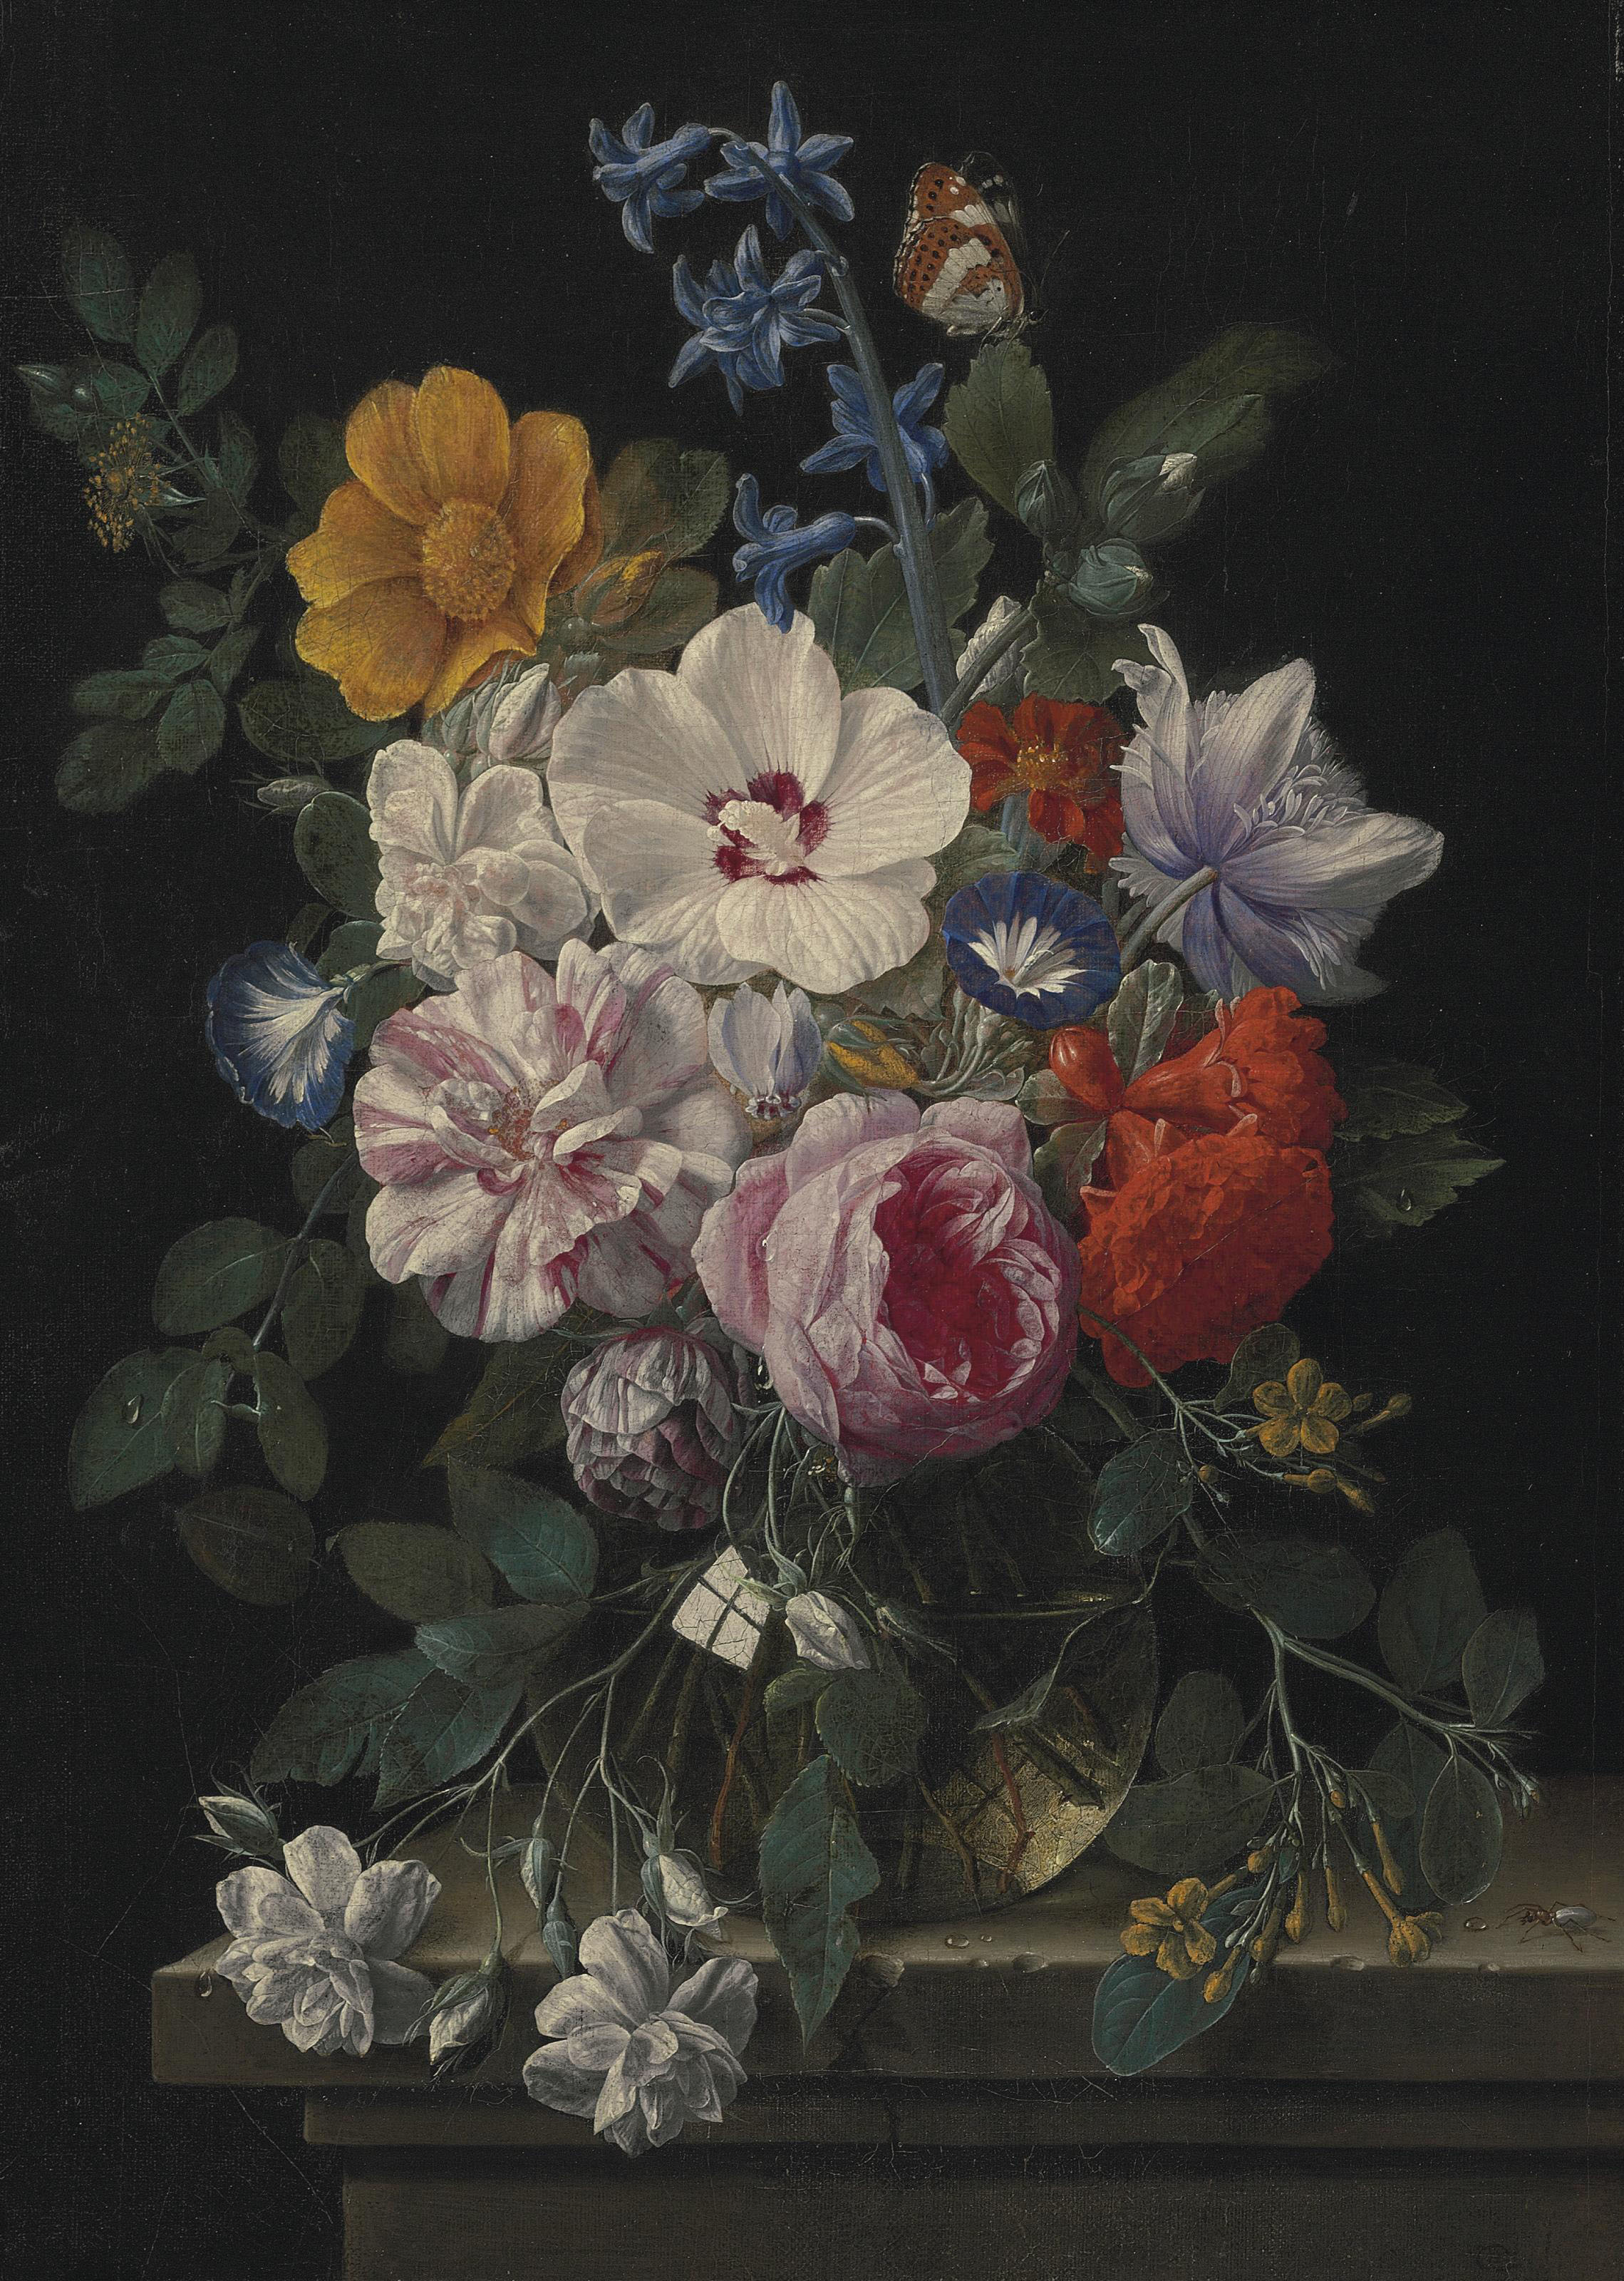 Flowers in a glass vase with a butterfly and beetle on a stone ledge